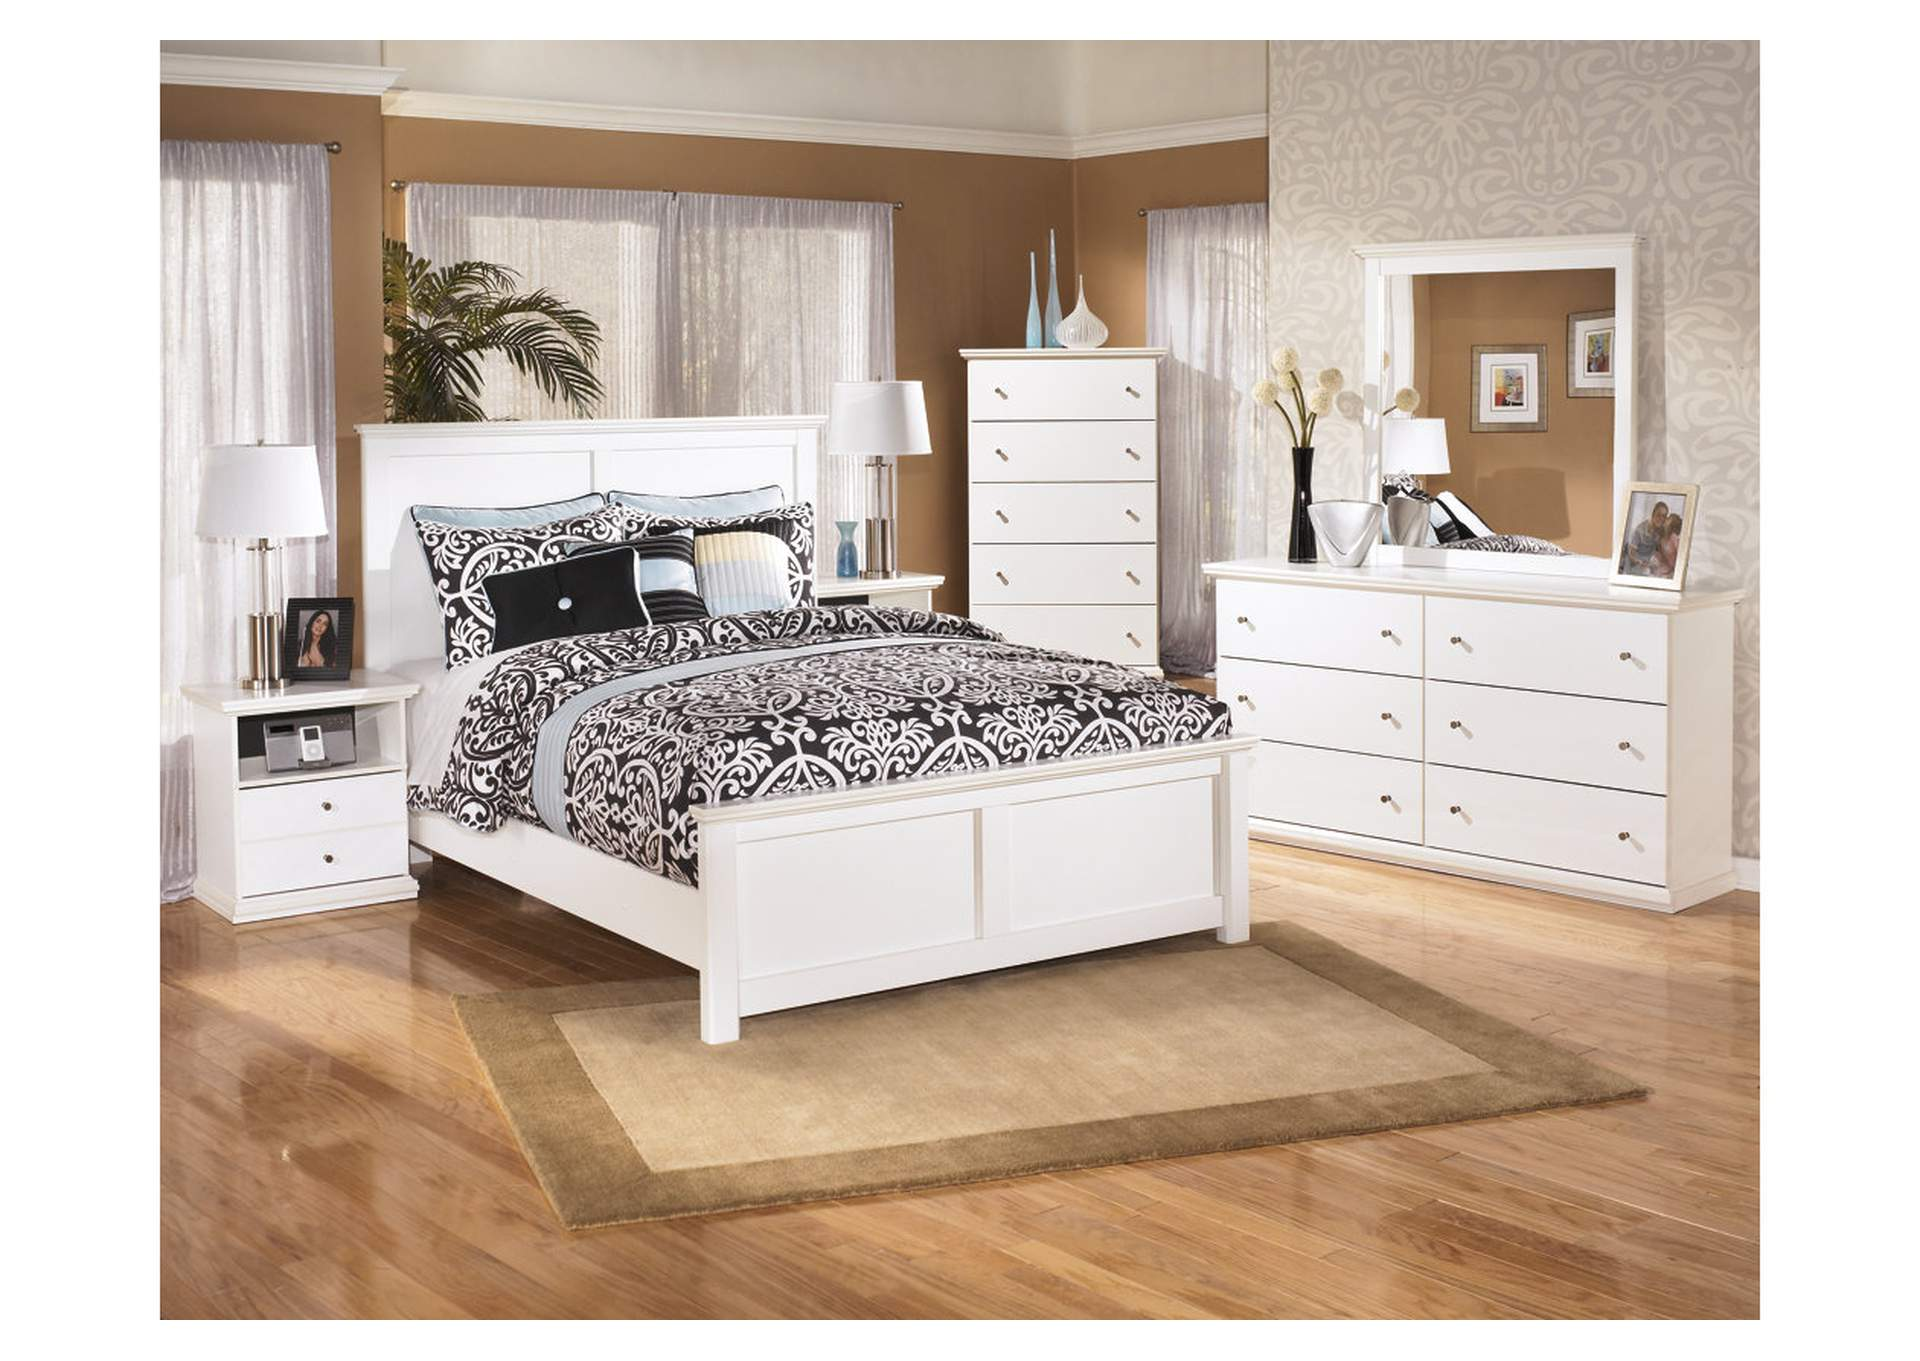 Bostwick Shoals King Panel Bed w/Dresser, Mirror & Drawer Chest,Signature Design By Ashley